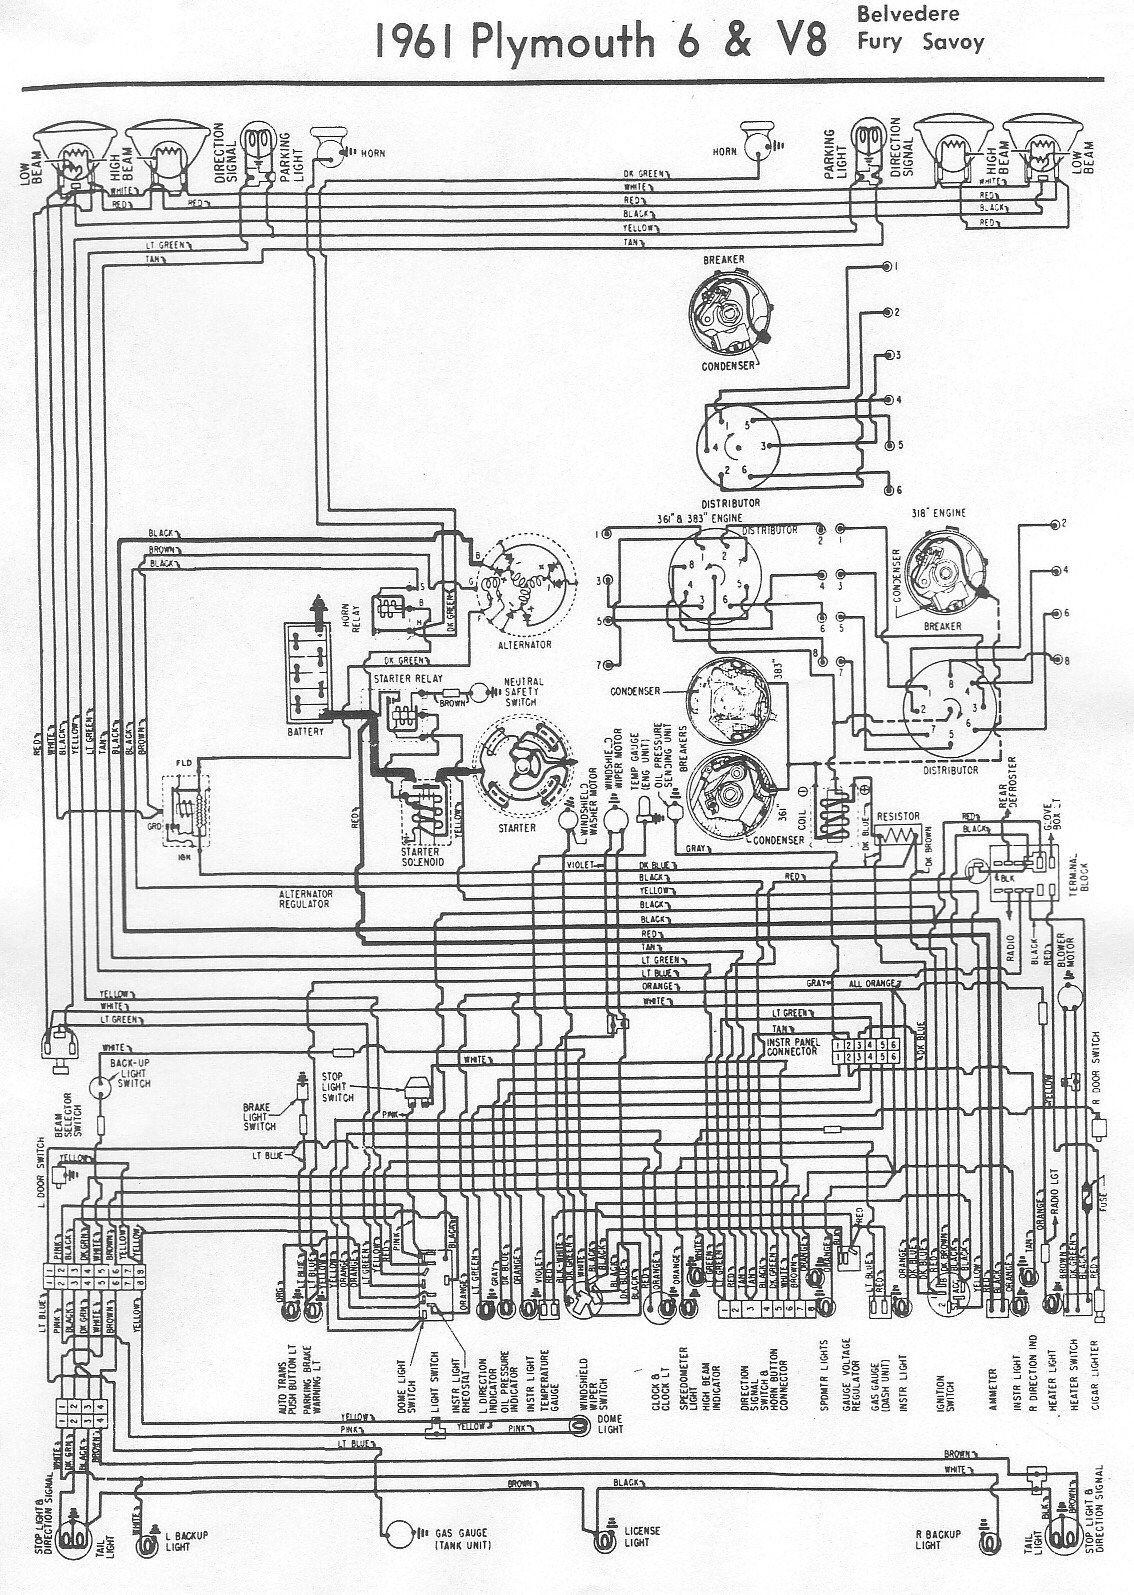 Free Auto Wiring Diagram: 1961 Plymouth Belvedere, Fury or ...